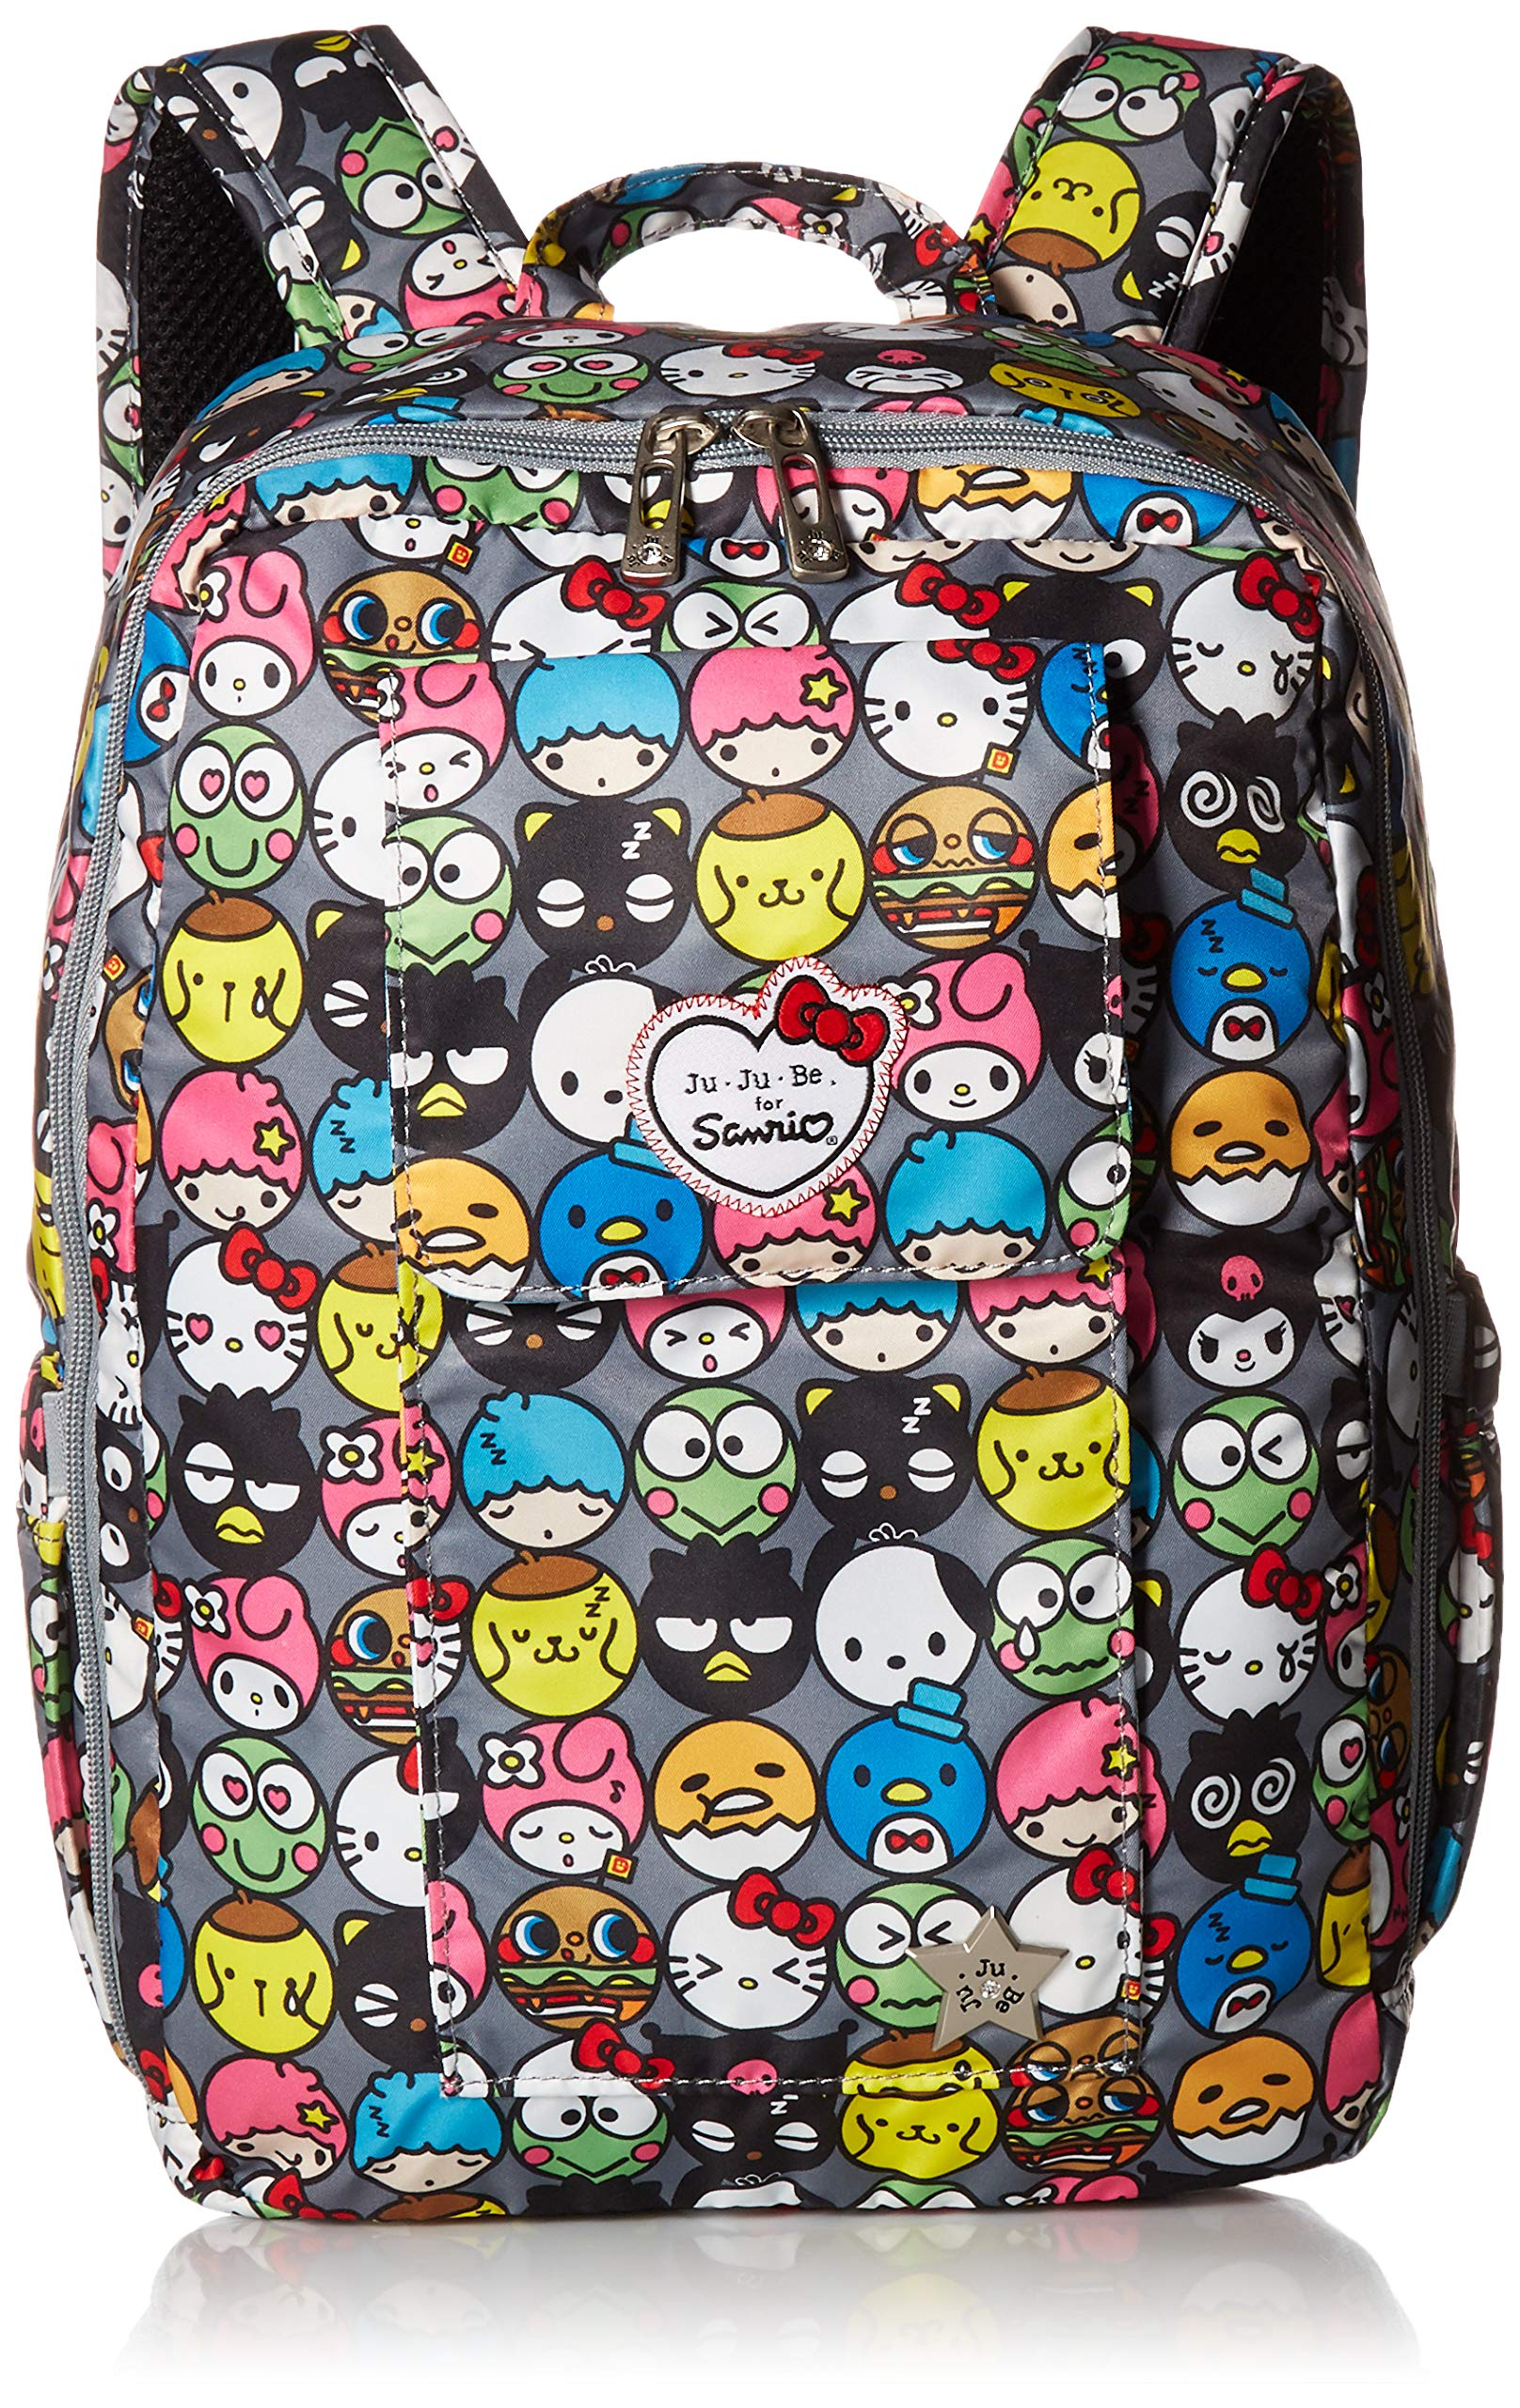 52f5c08f222 JuJuBe MiniBe Small Backpack, Hello Kitty Collection - Hello Friends